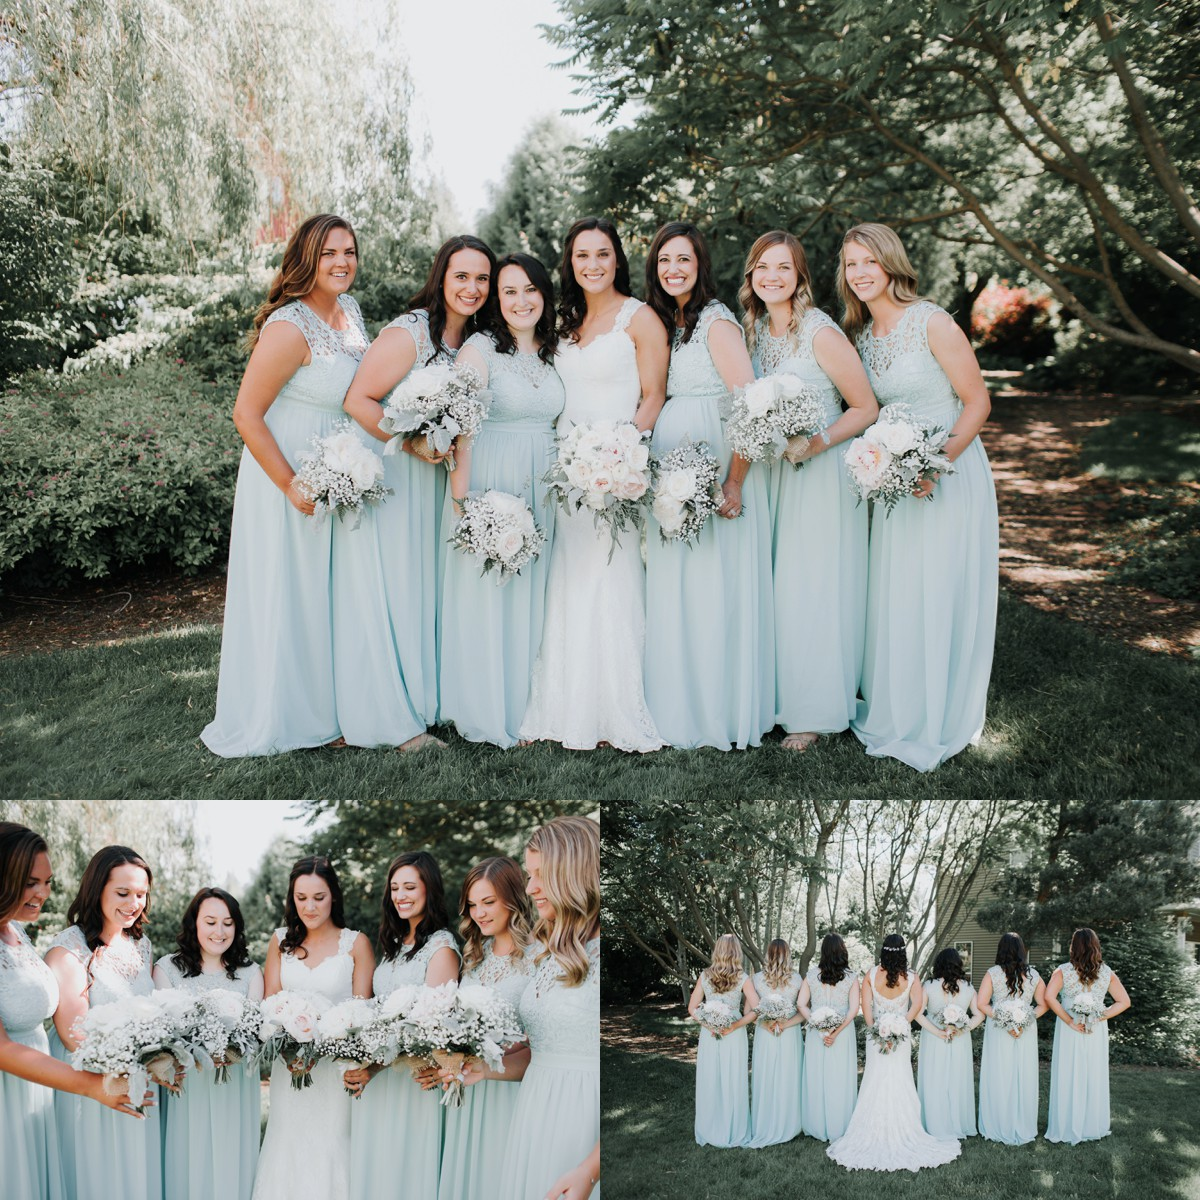 spokane wedding photographer_0800